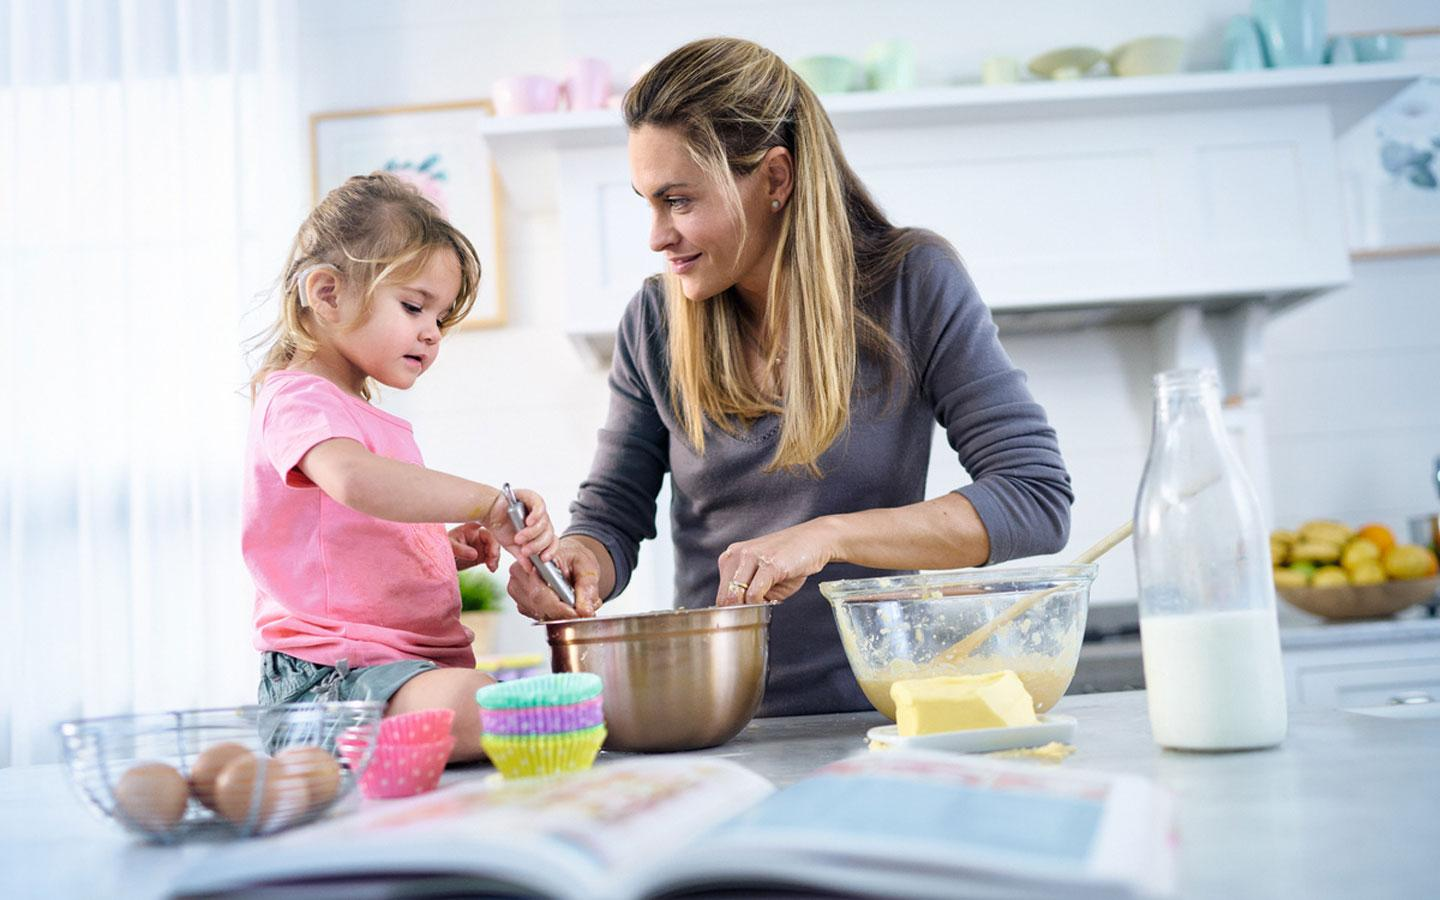 anz-early-interventions-for-children.jpg